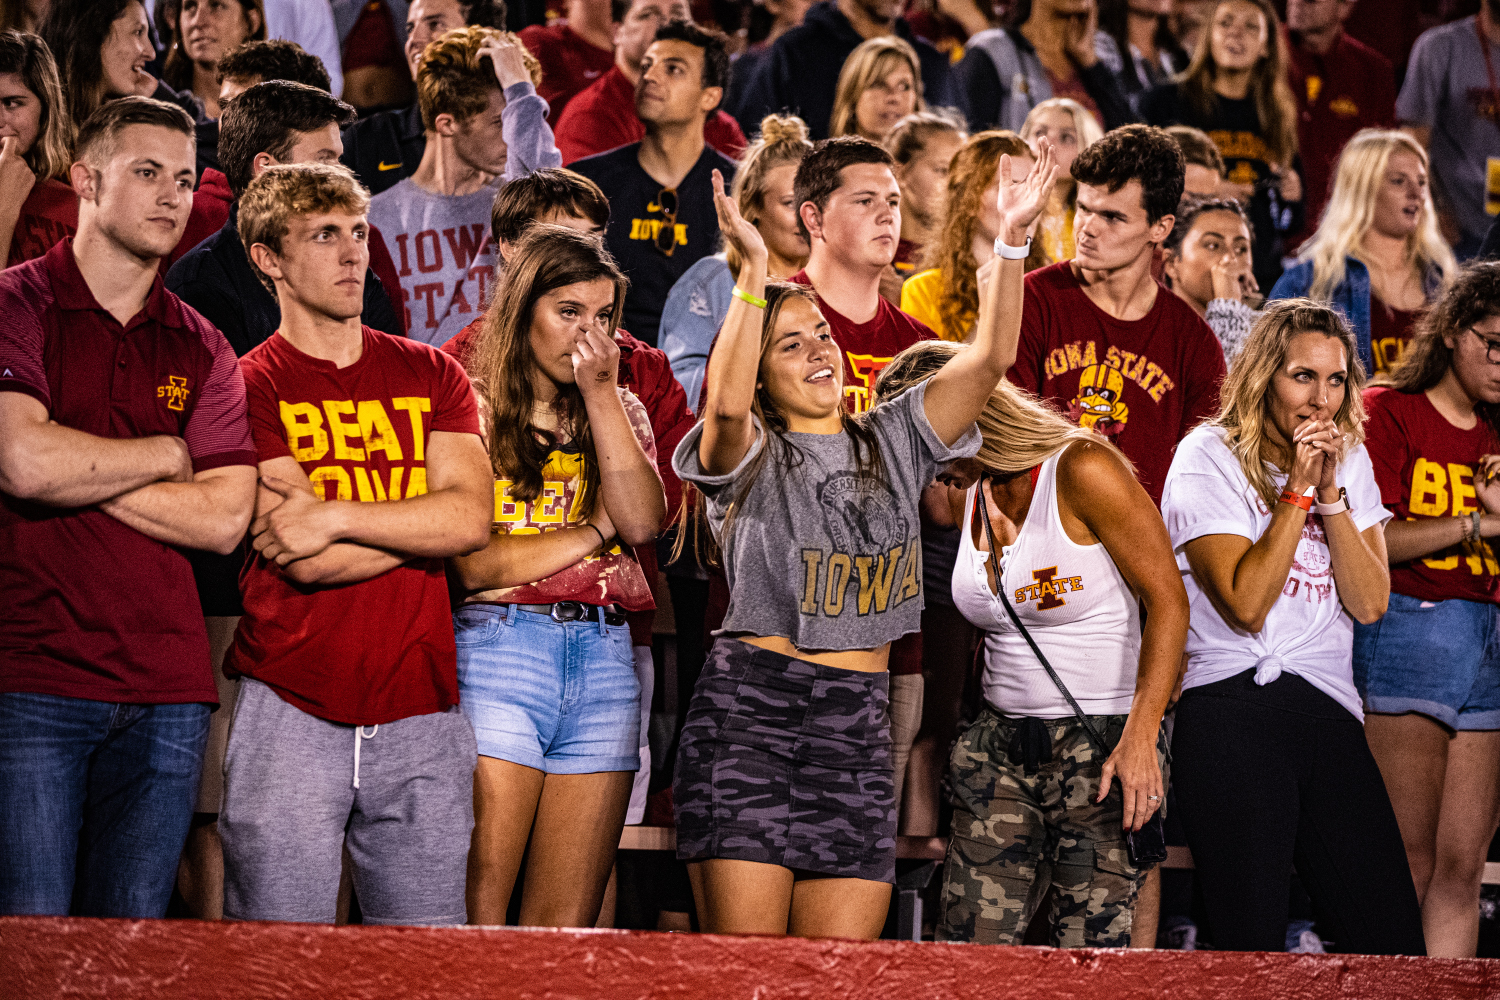 An Iowa fan celebrates a turnover on downs during a football game between Iowa and Iowa State at Jack Trice Stadium in Ames on Saturday, September 14, 2019. The Hawkeyes retained the Cy-Hawk Trophy for the fifth consecutive year, downing the Cyclones, 18-17.